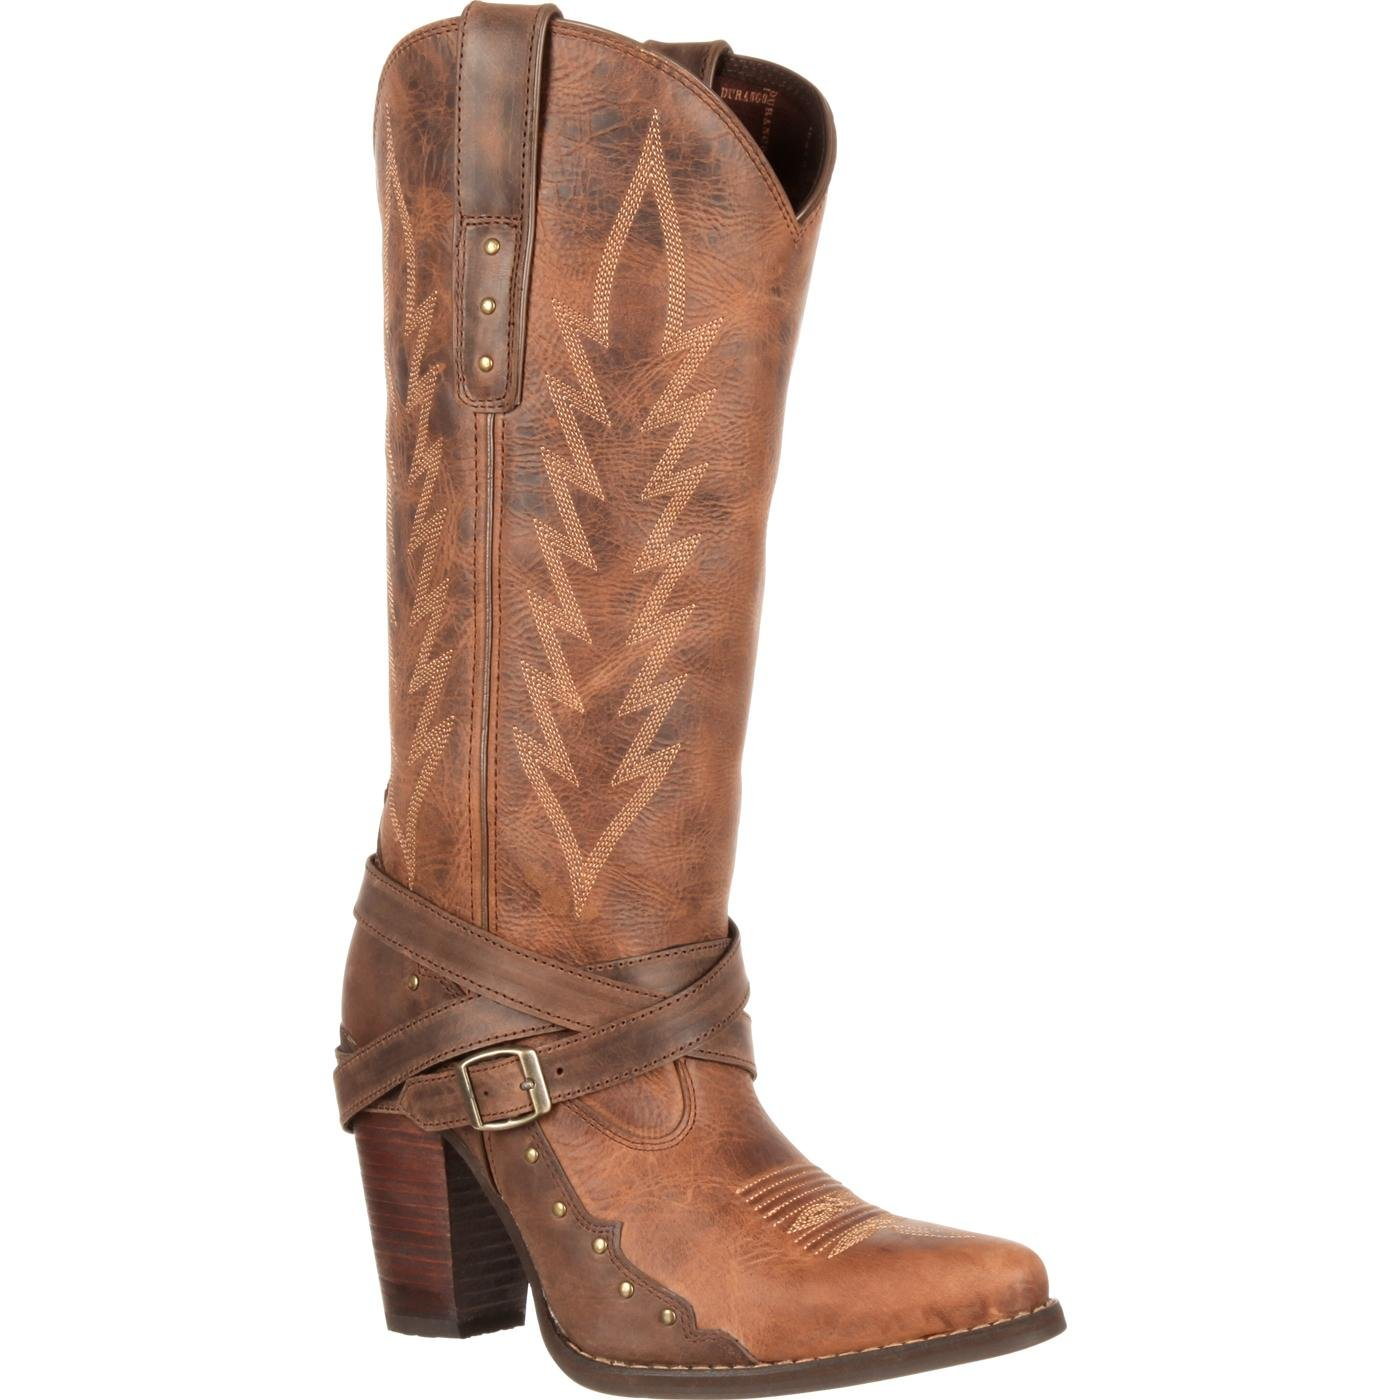 Durango City Women's Aubrey High Heel Cowgirl Buckle Boot - Durango